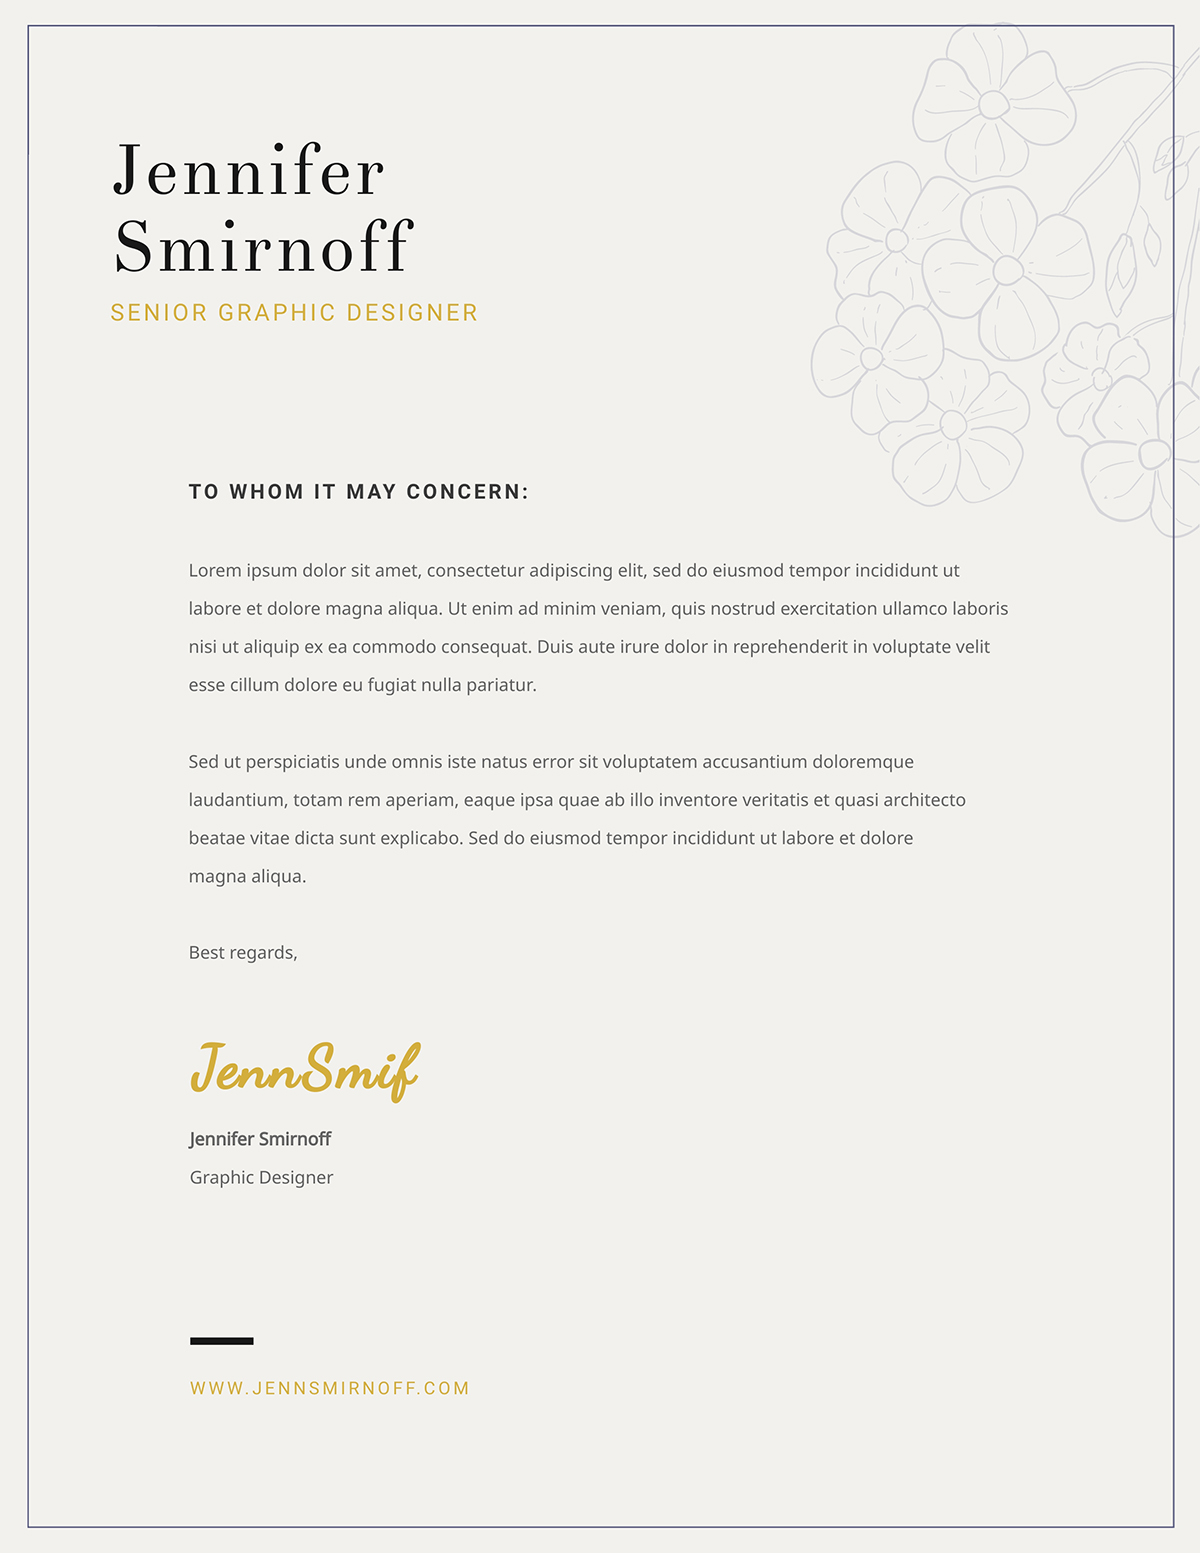 A minimalistic business letter template available in Visme.